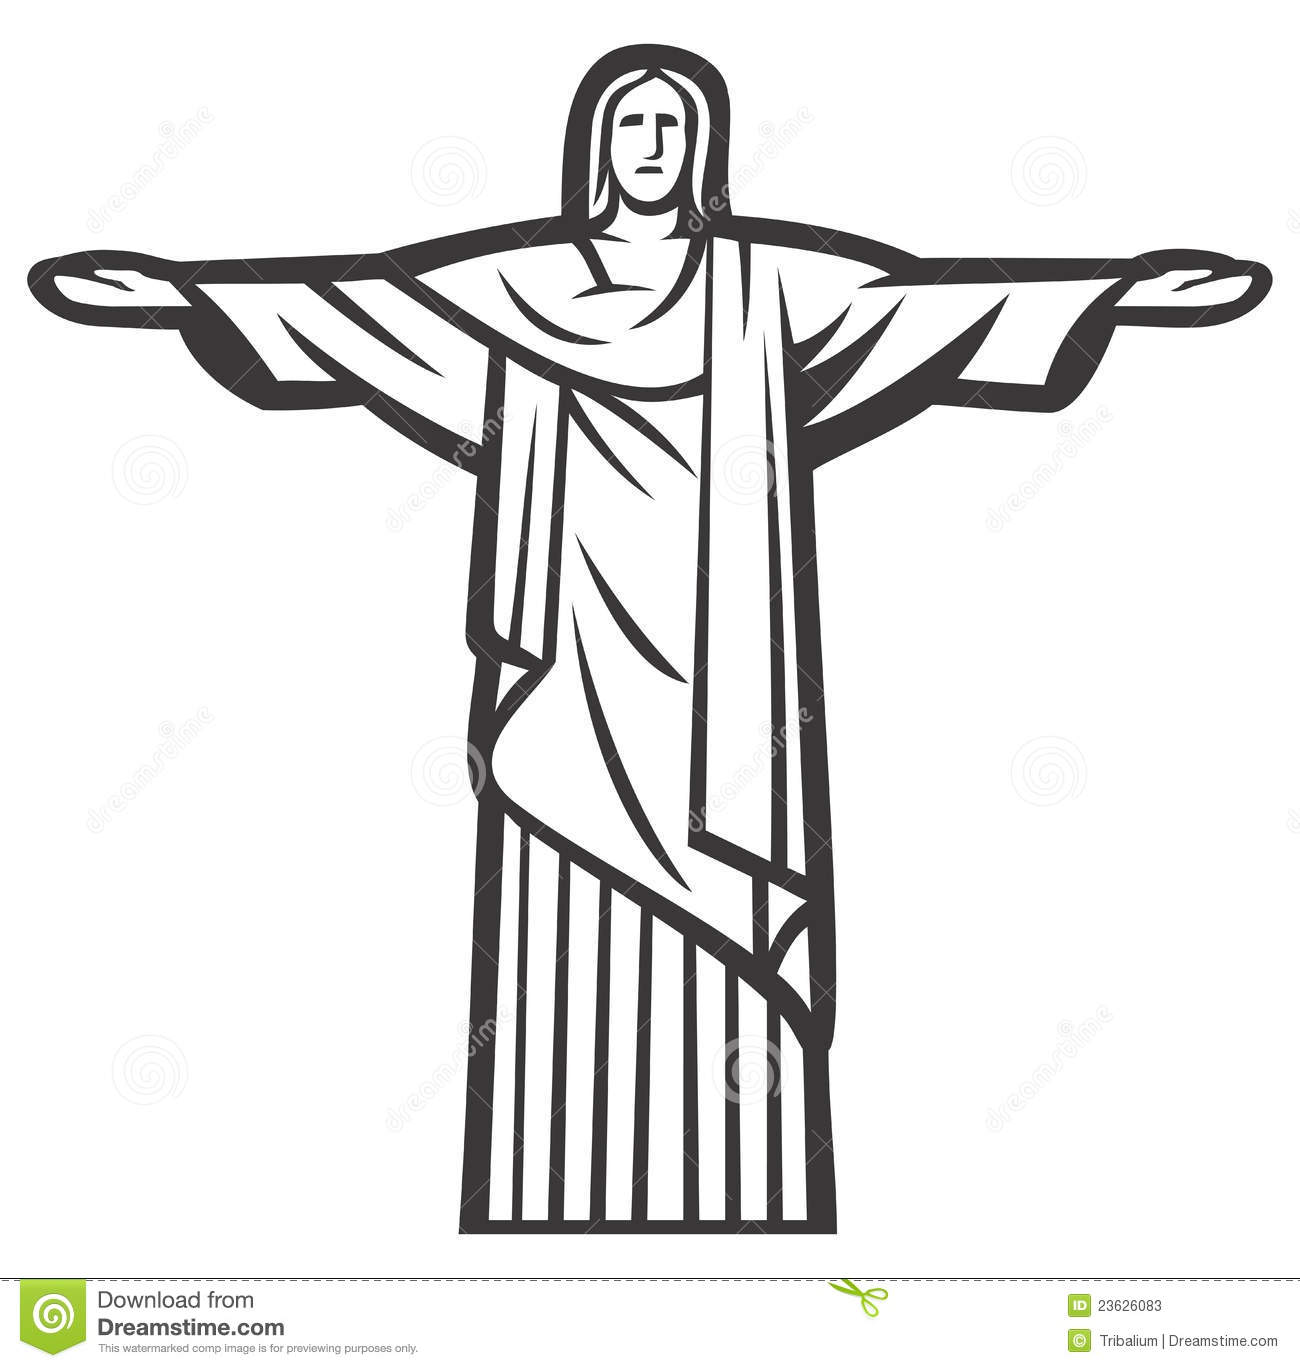 Stock Photos Christ Redeemer Statue Image23626083 furthermore Coloriage Dieu additionally Tattooflash My Little Angel 56644801 as well Zoom In Versus Zoom Out Perspective in addition The Church Family. on jesus drawings